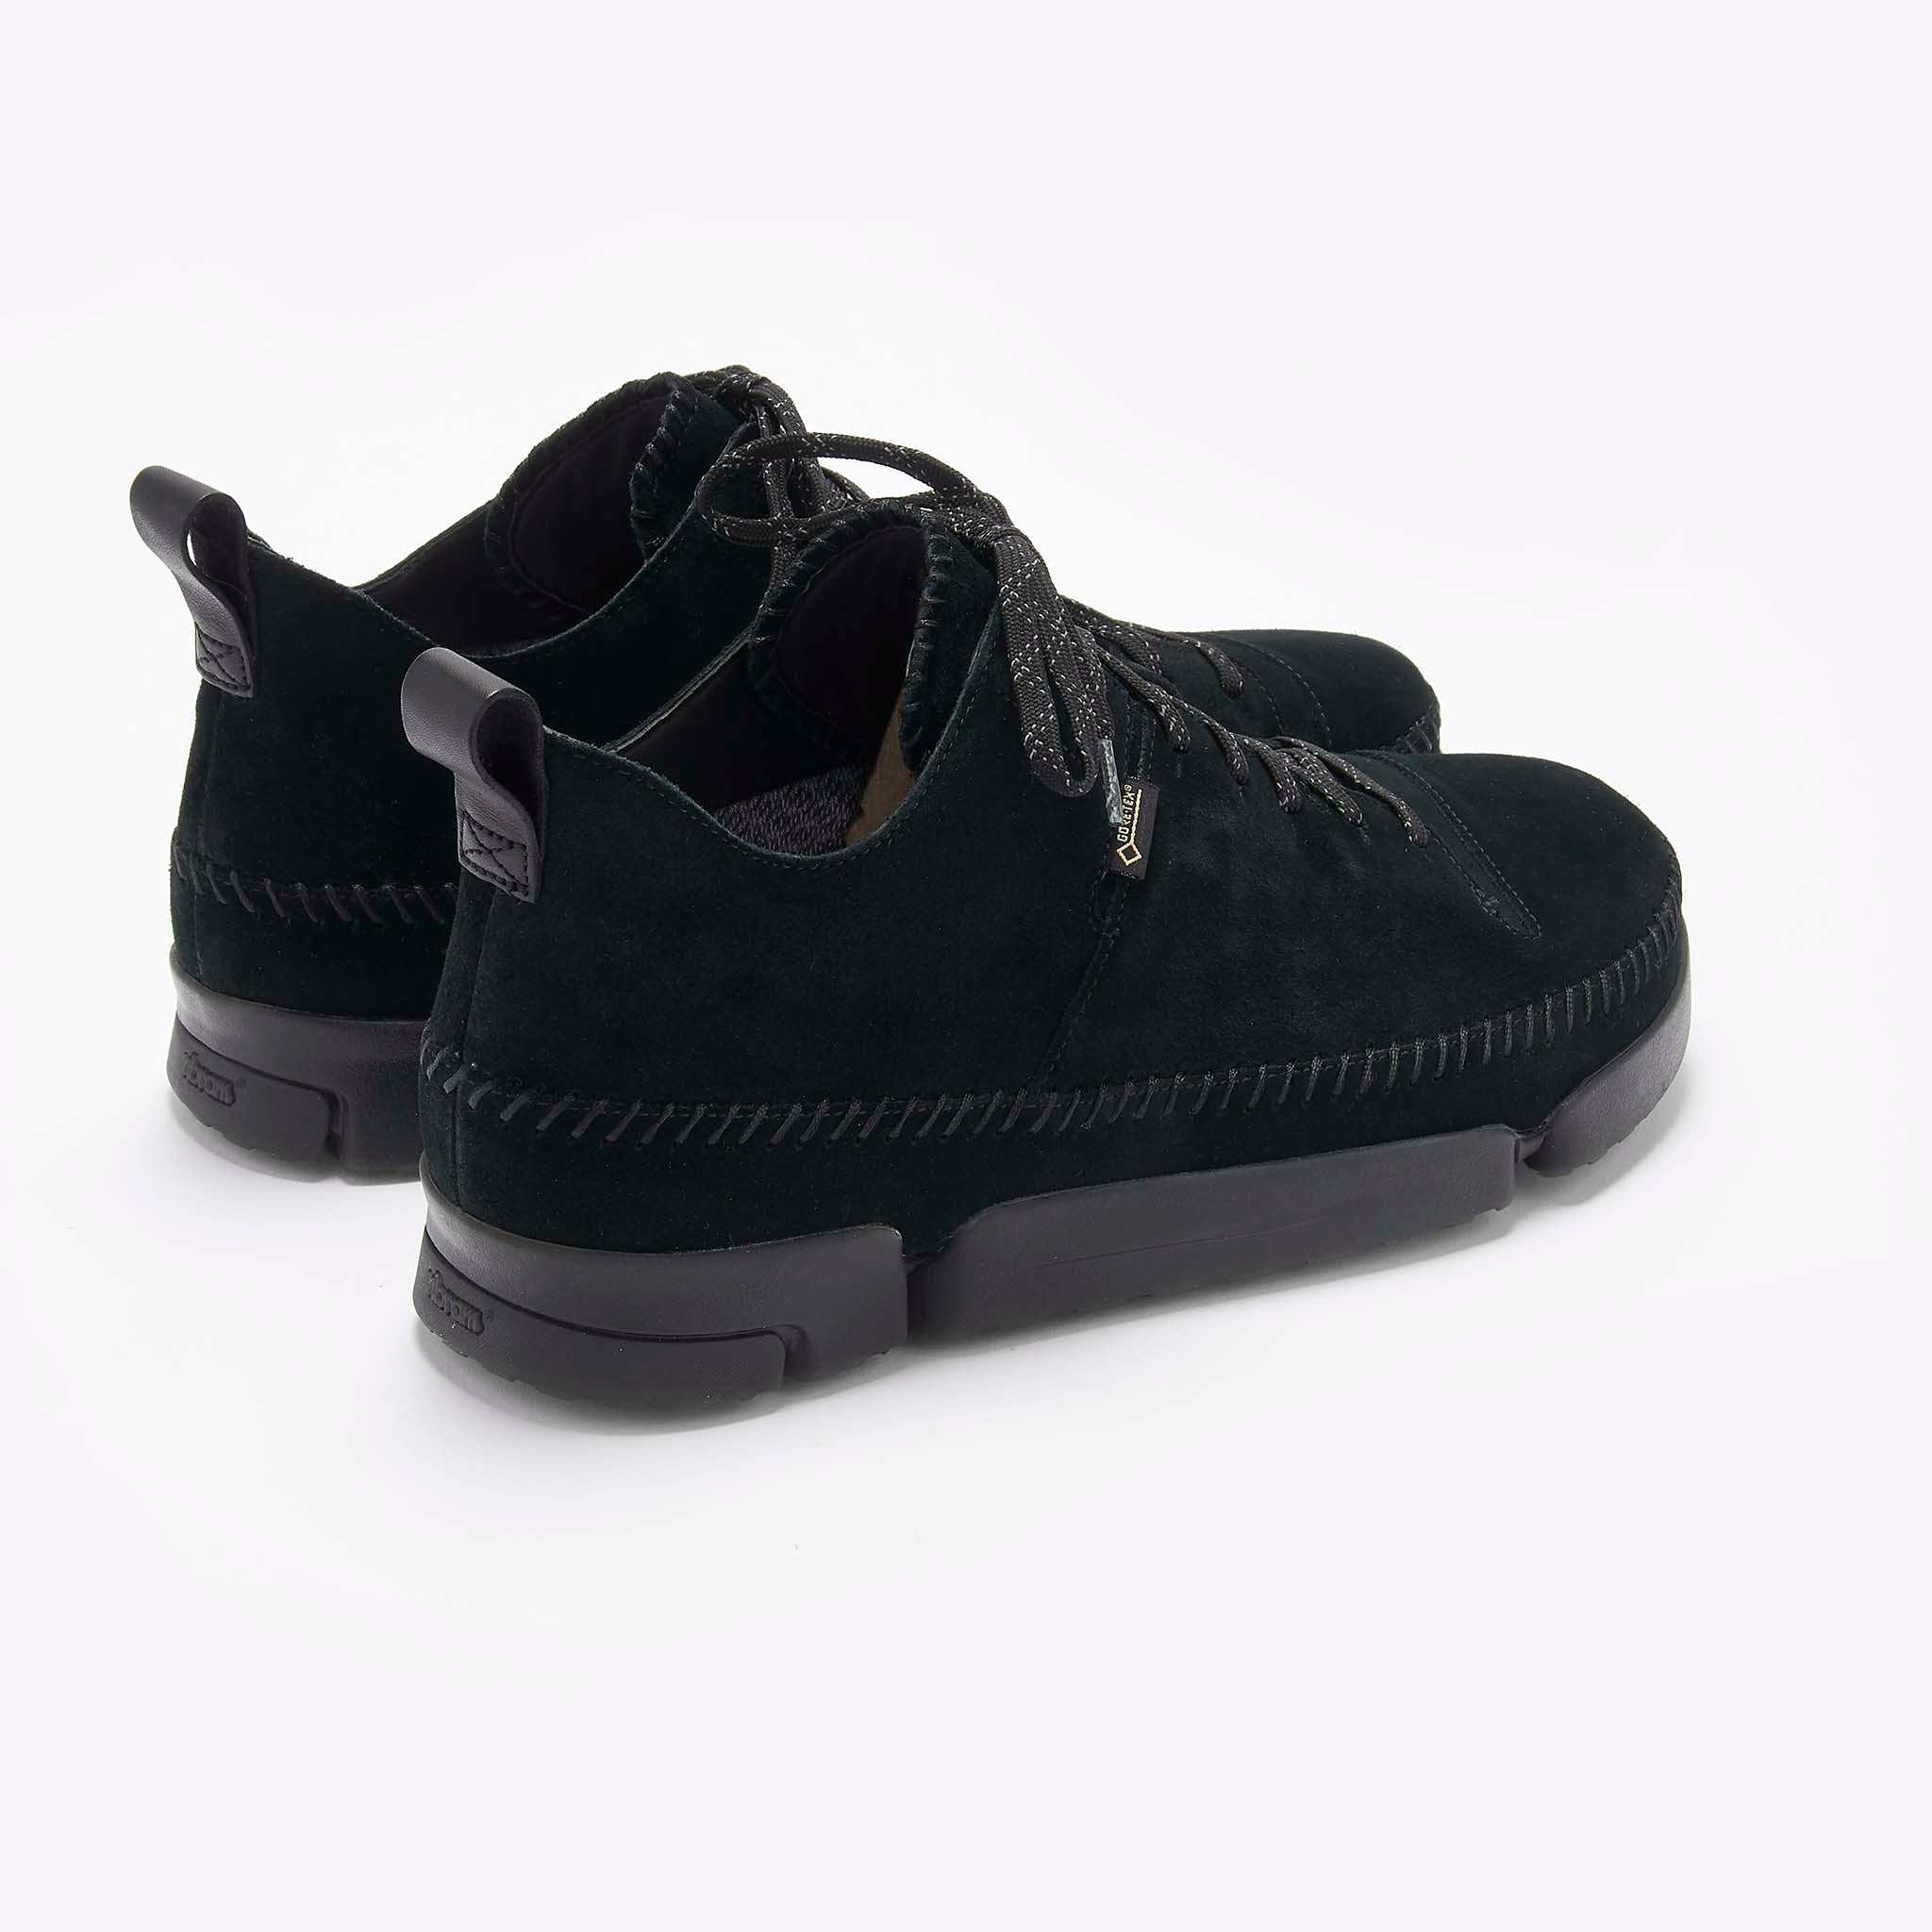 Clarks Originals Trigenic Dry Gore-Tex in Black Leather